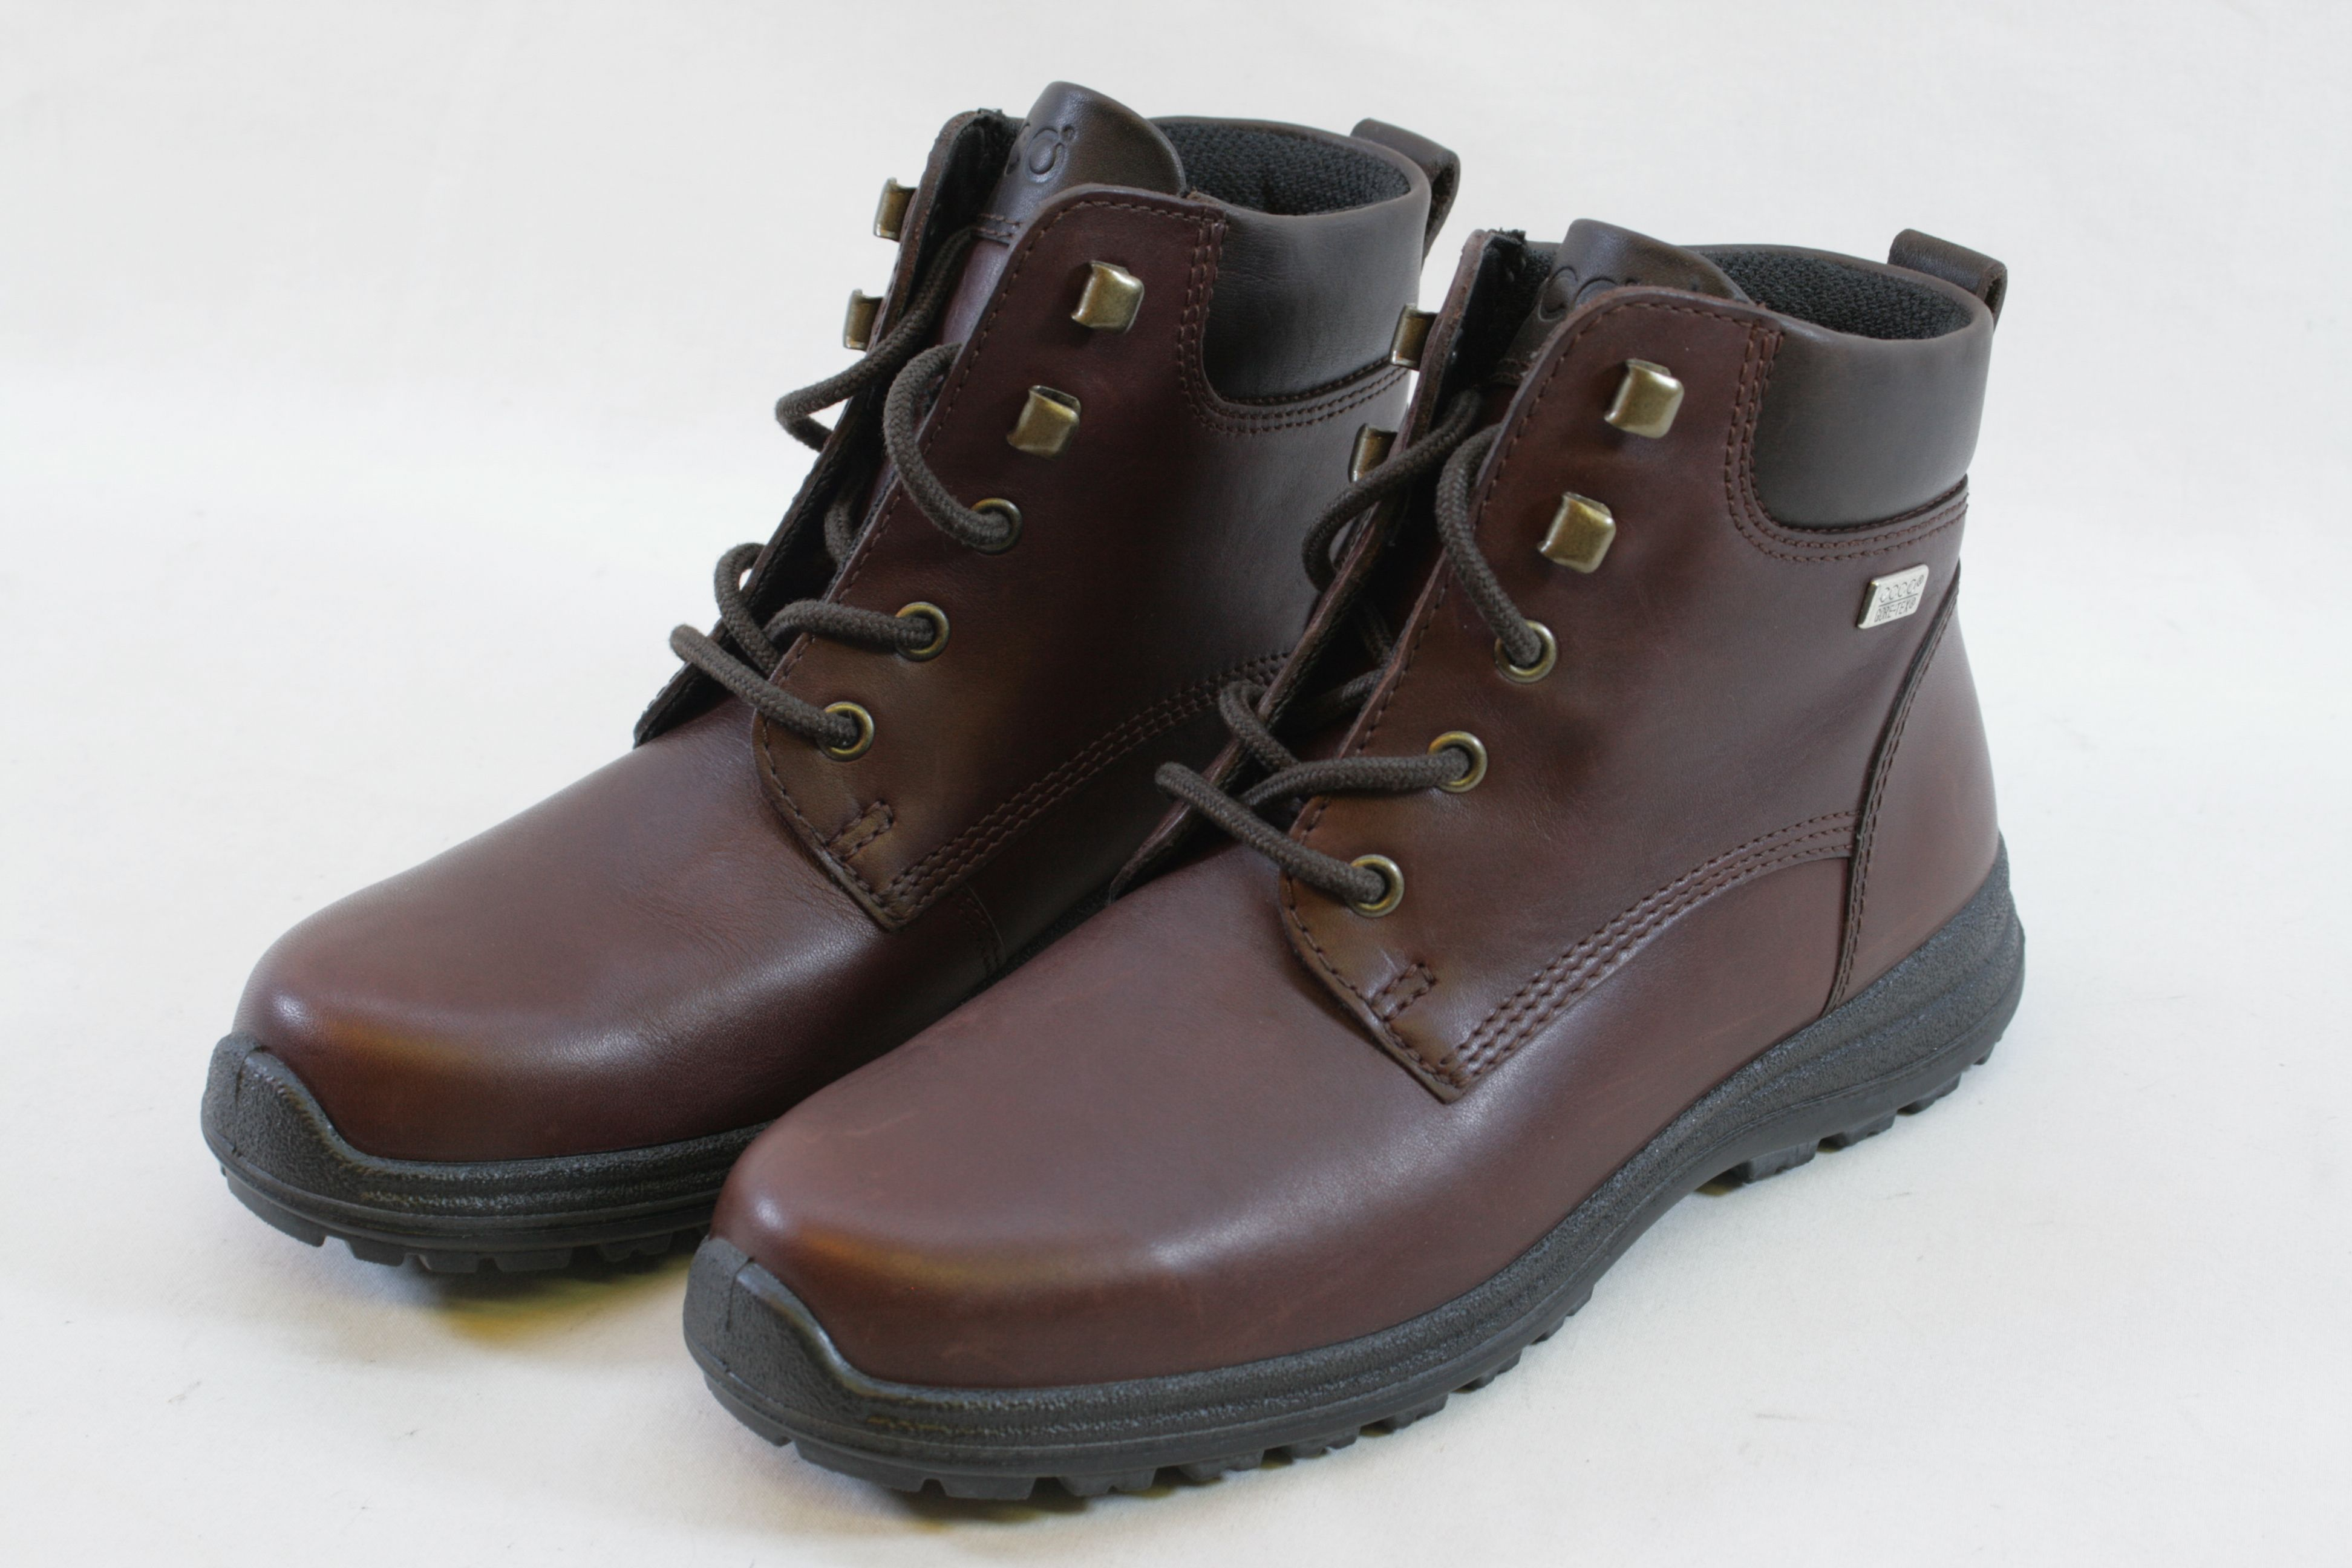 350d1220539 Womens Ecco Gore-Tex Brown Leather Ankle Boots - Size UK 6 EU 39 1. Open  Full-Size Image